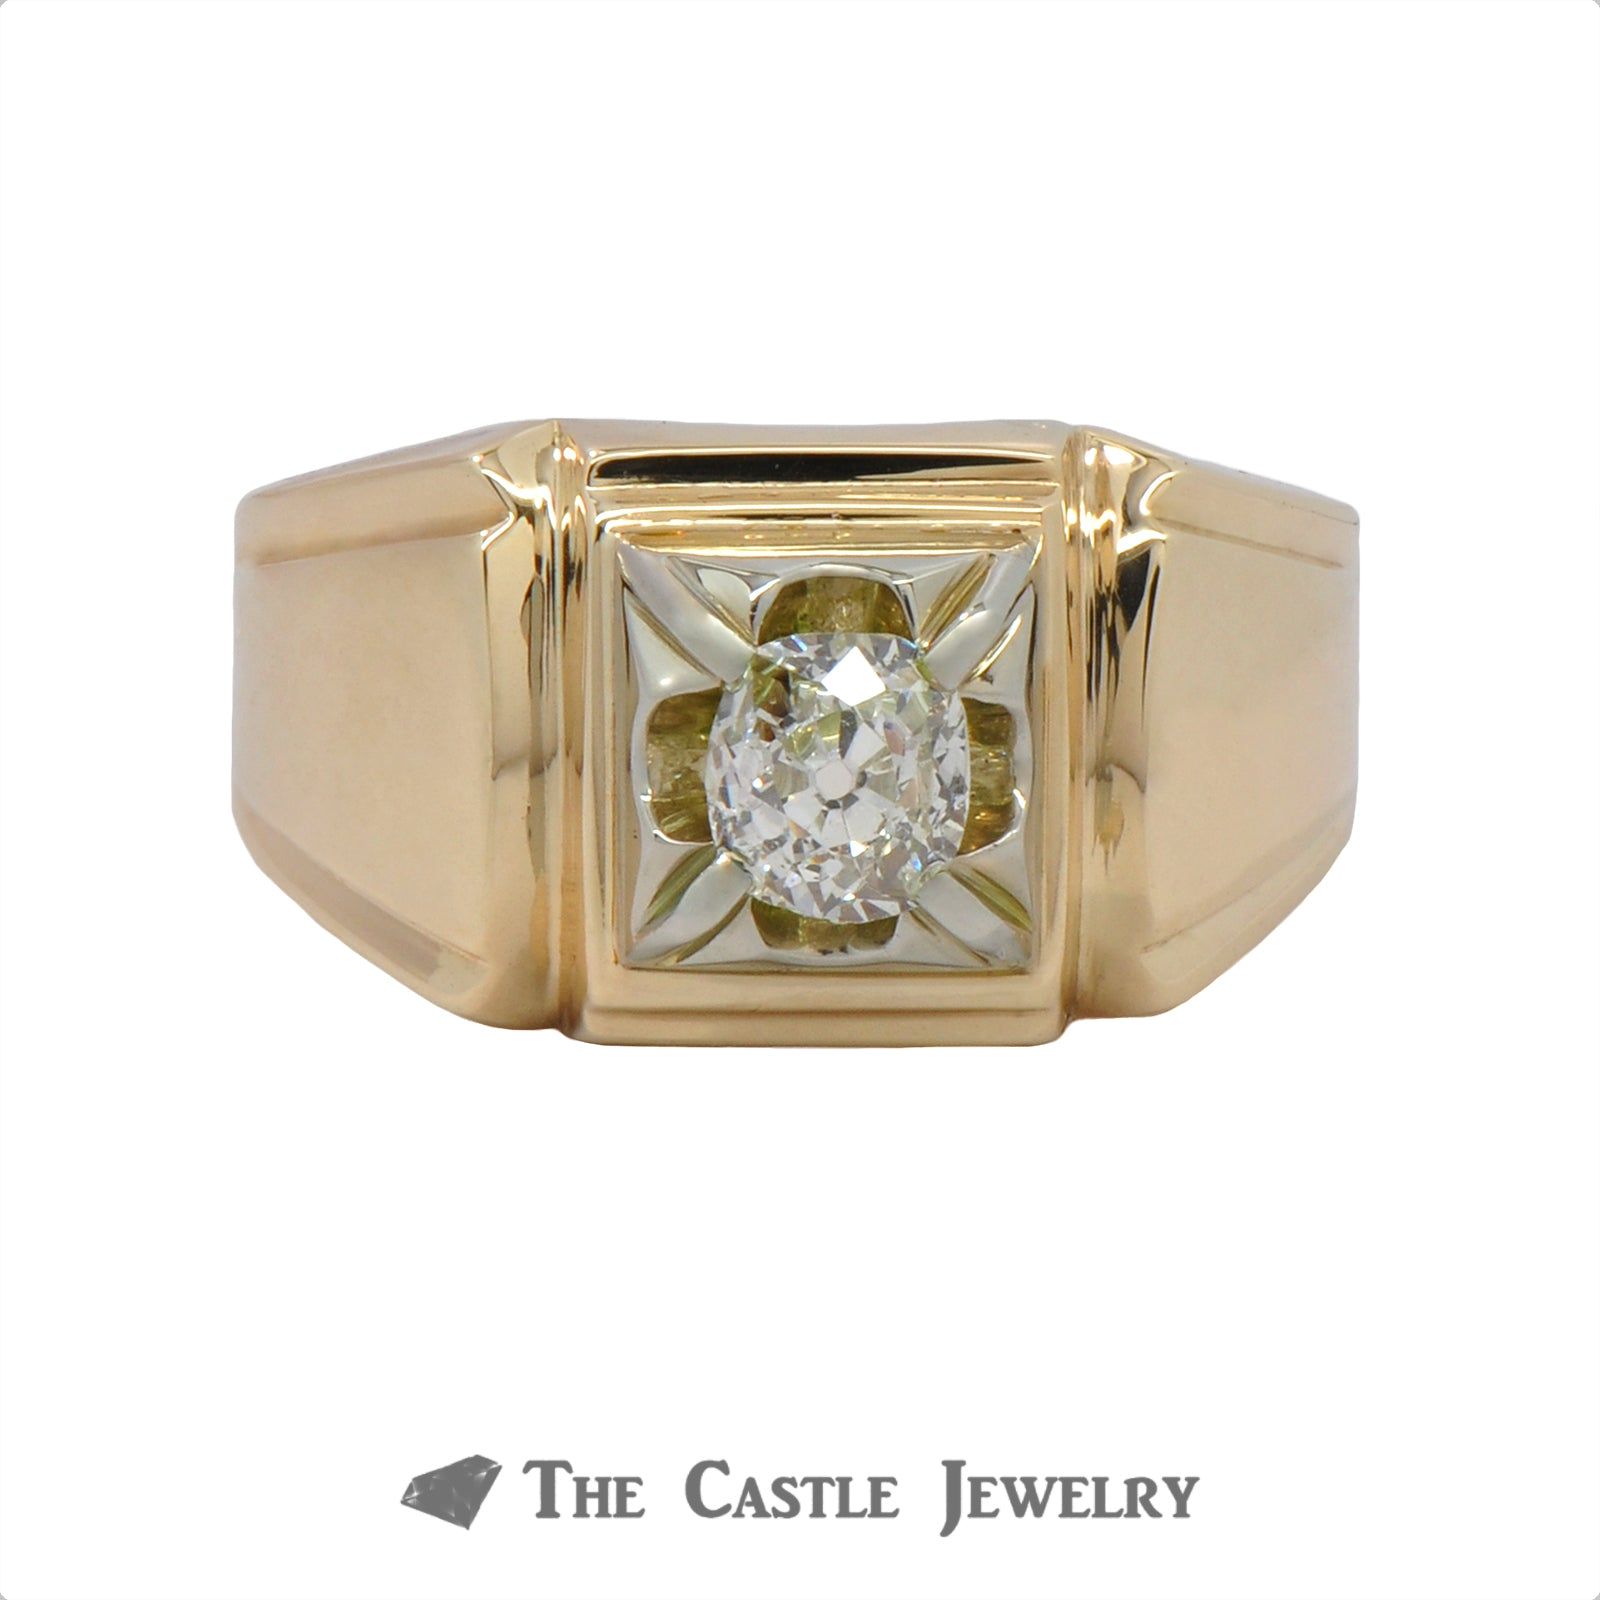 .50 Carat Old Mine Cut Gent's Diamond Ring In 14k Yellow Gold